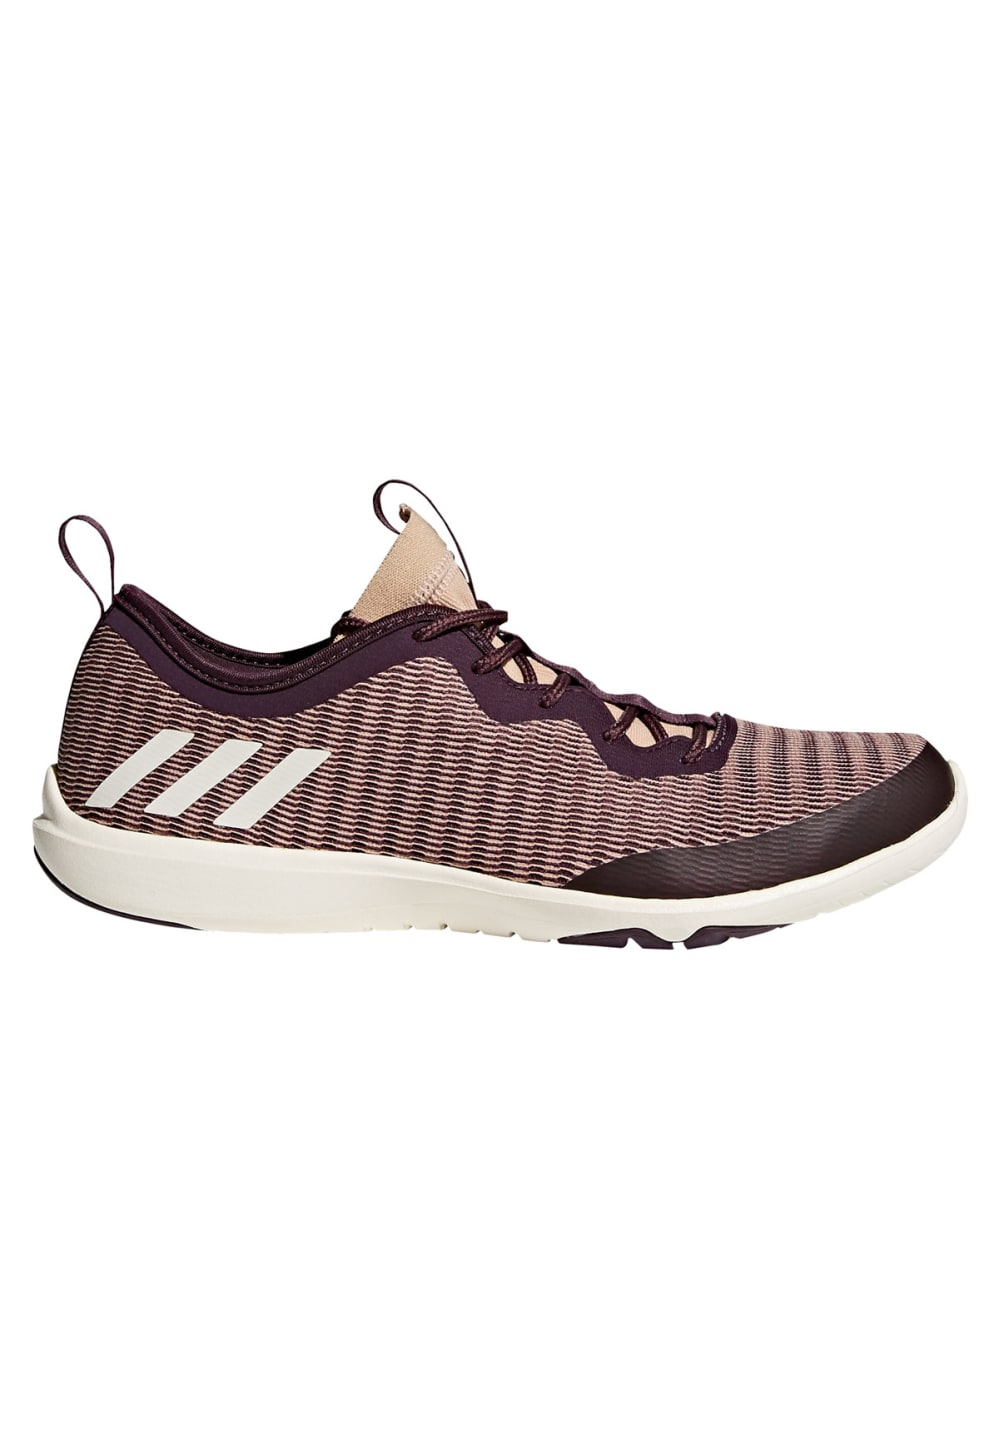 new product c2f87 38fa9 adidas Adipure 360.4 - Fitness shoes for Women - Multicolor